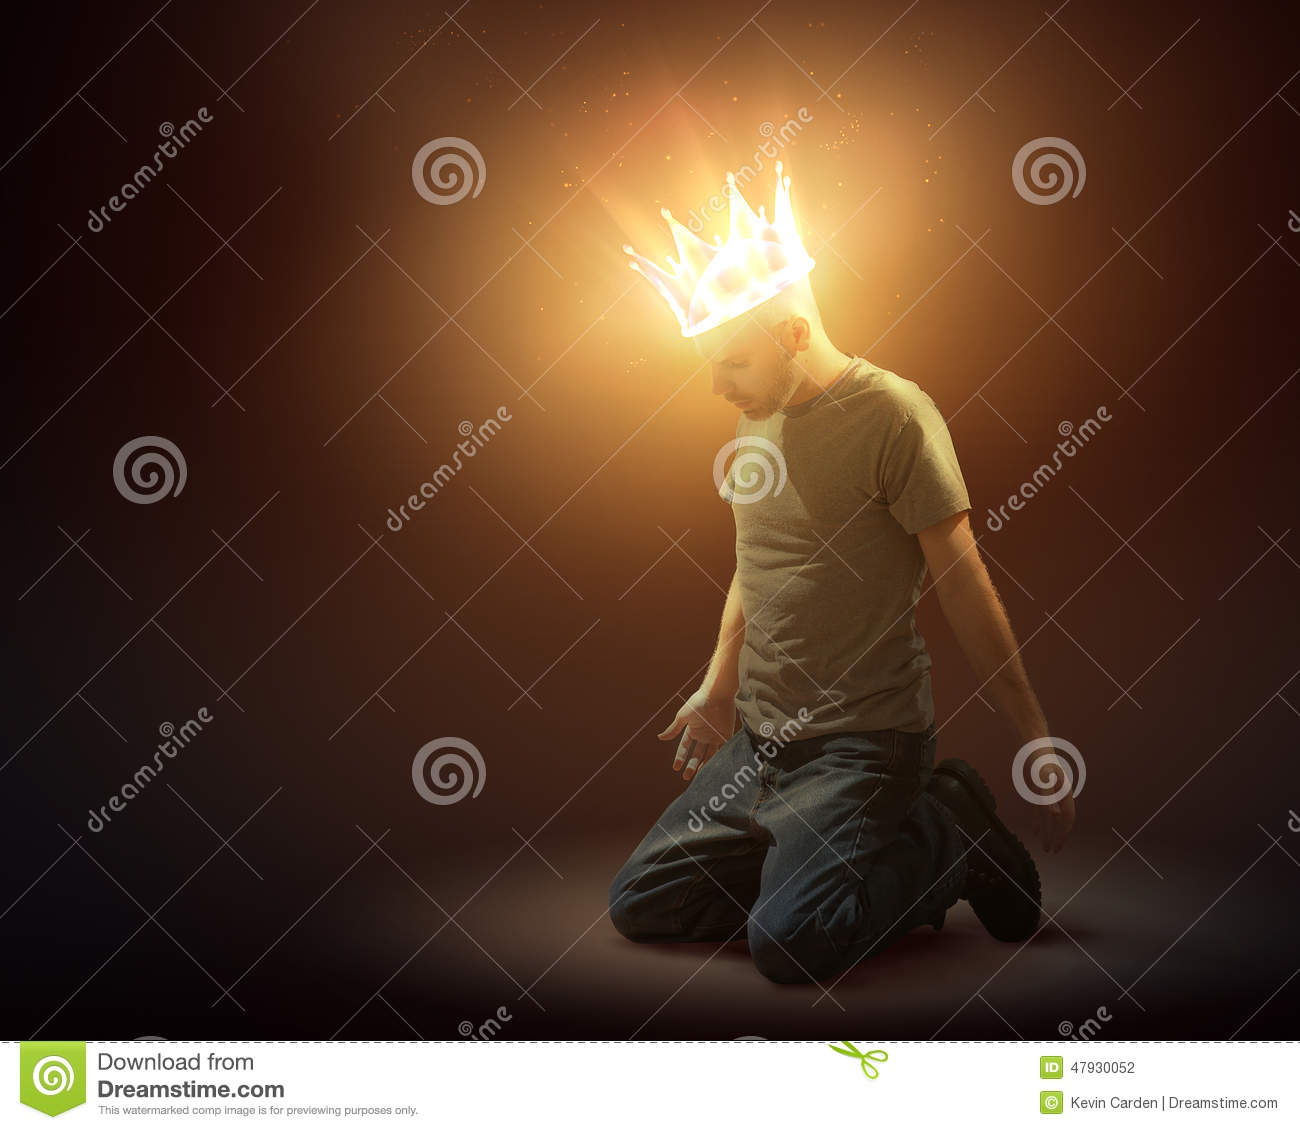 Download Crown Of Light Stock Photo. Image Of Glow, Victory, Royalty    47930052